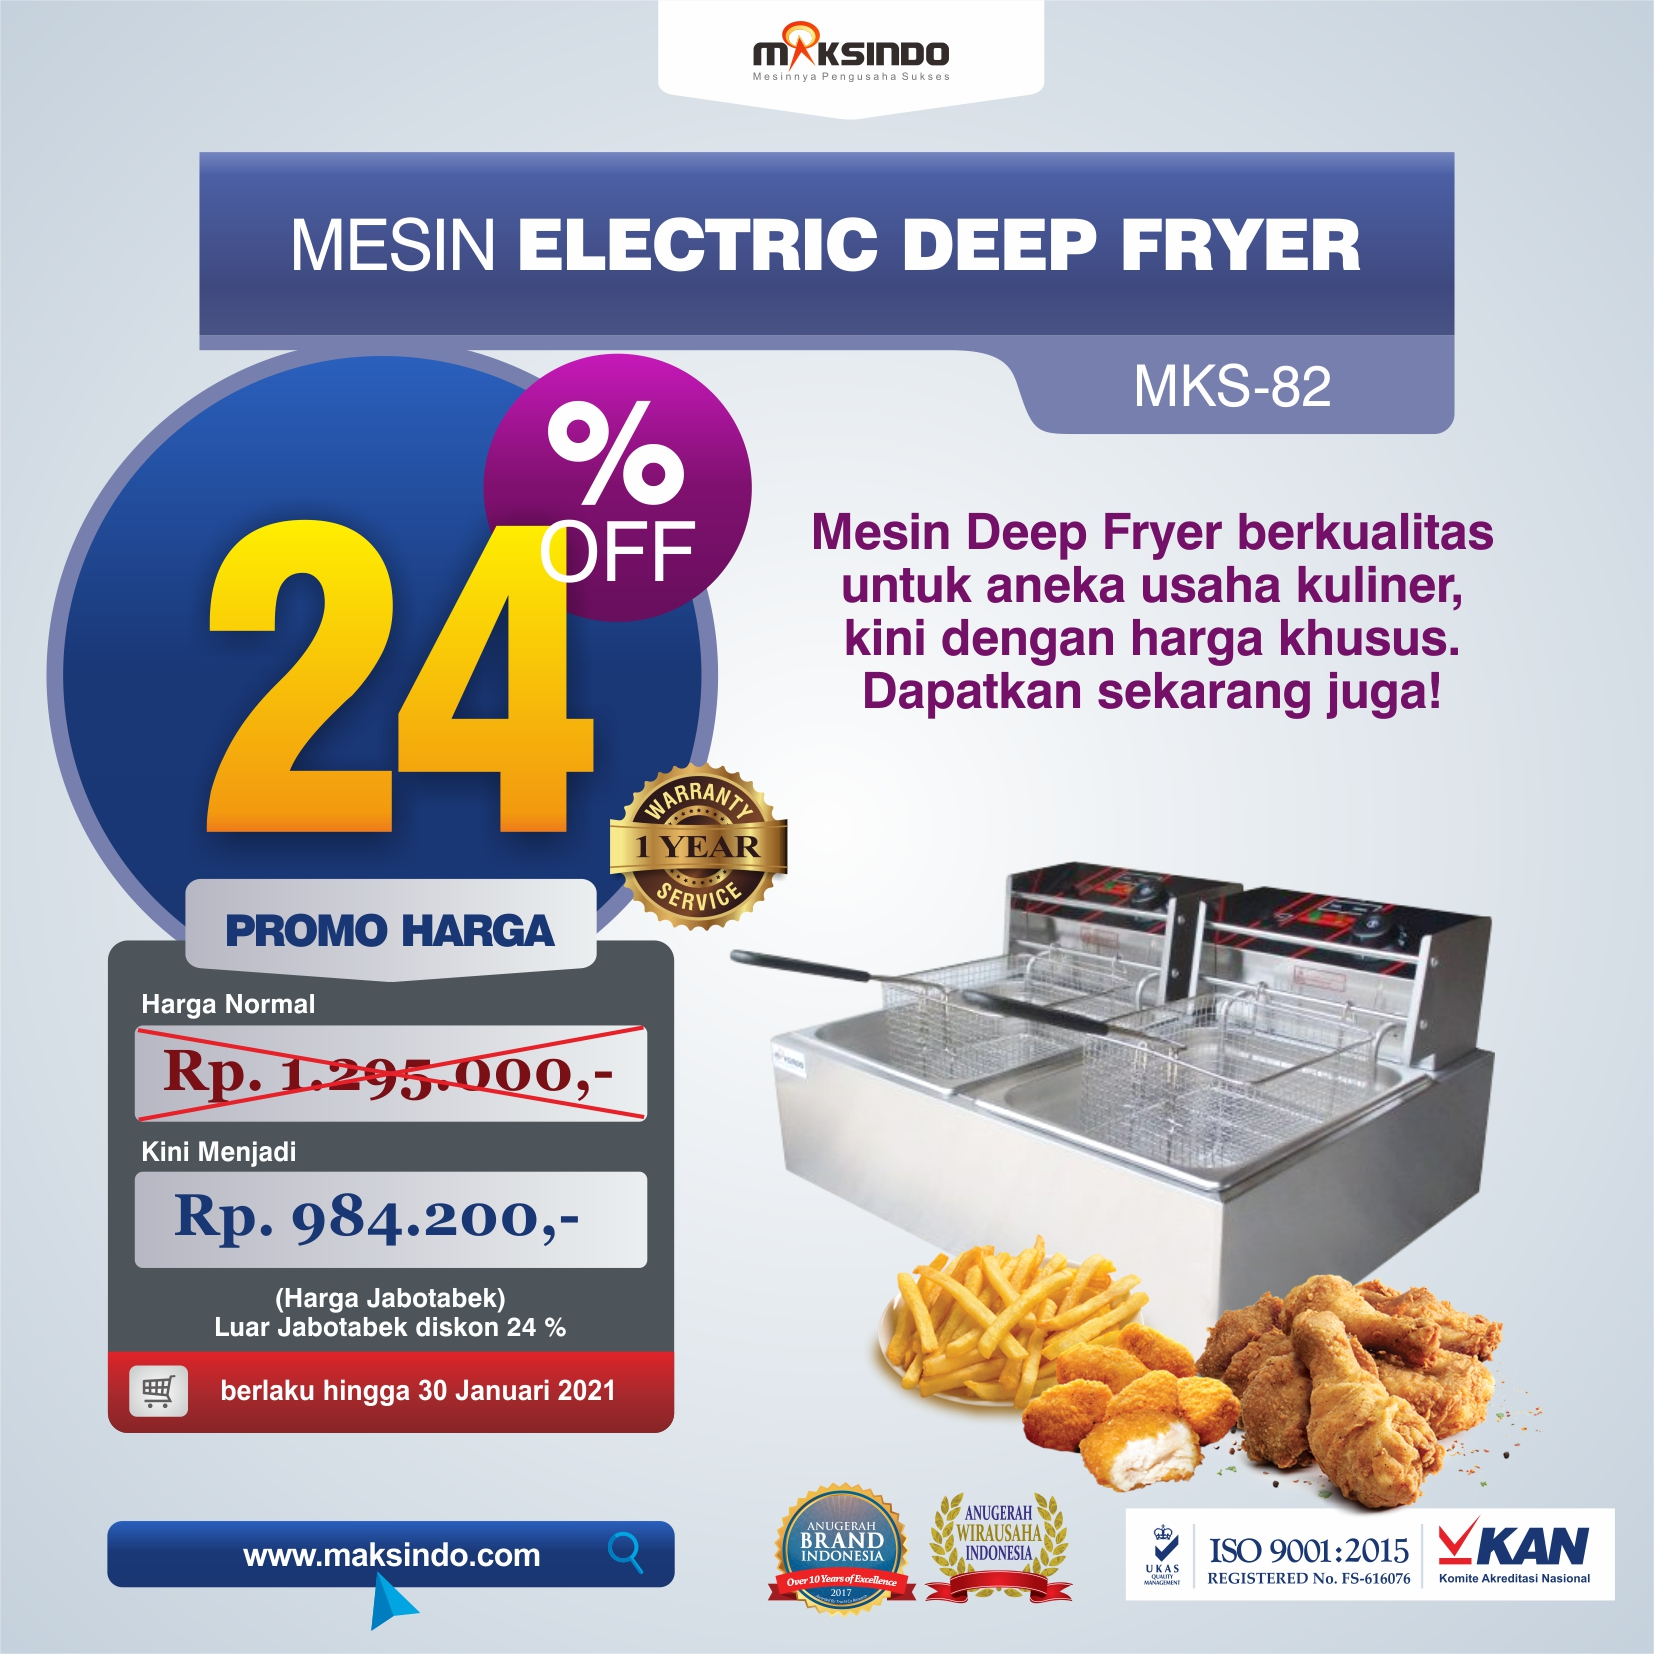 Jual Mesin Electric Deep Fryer MKS-82 di Medan